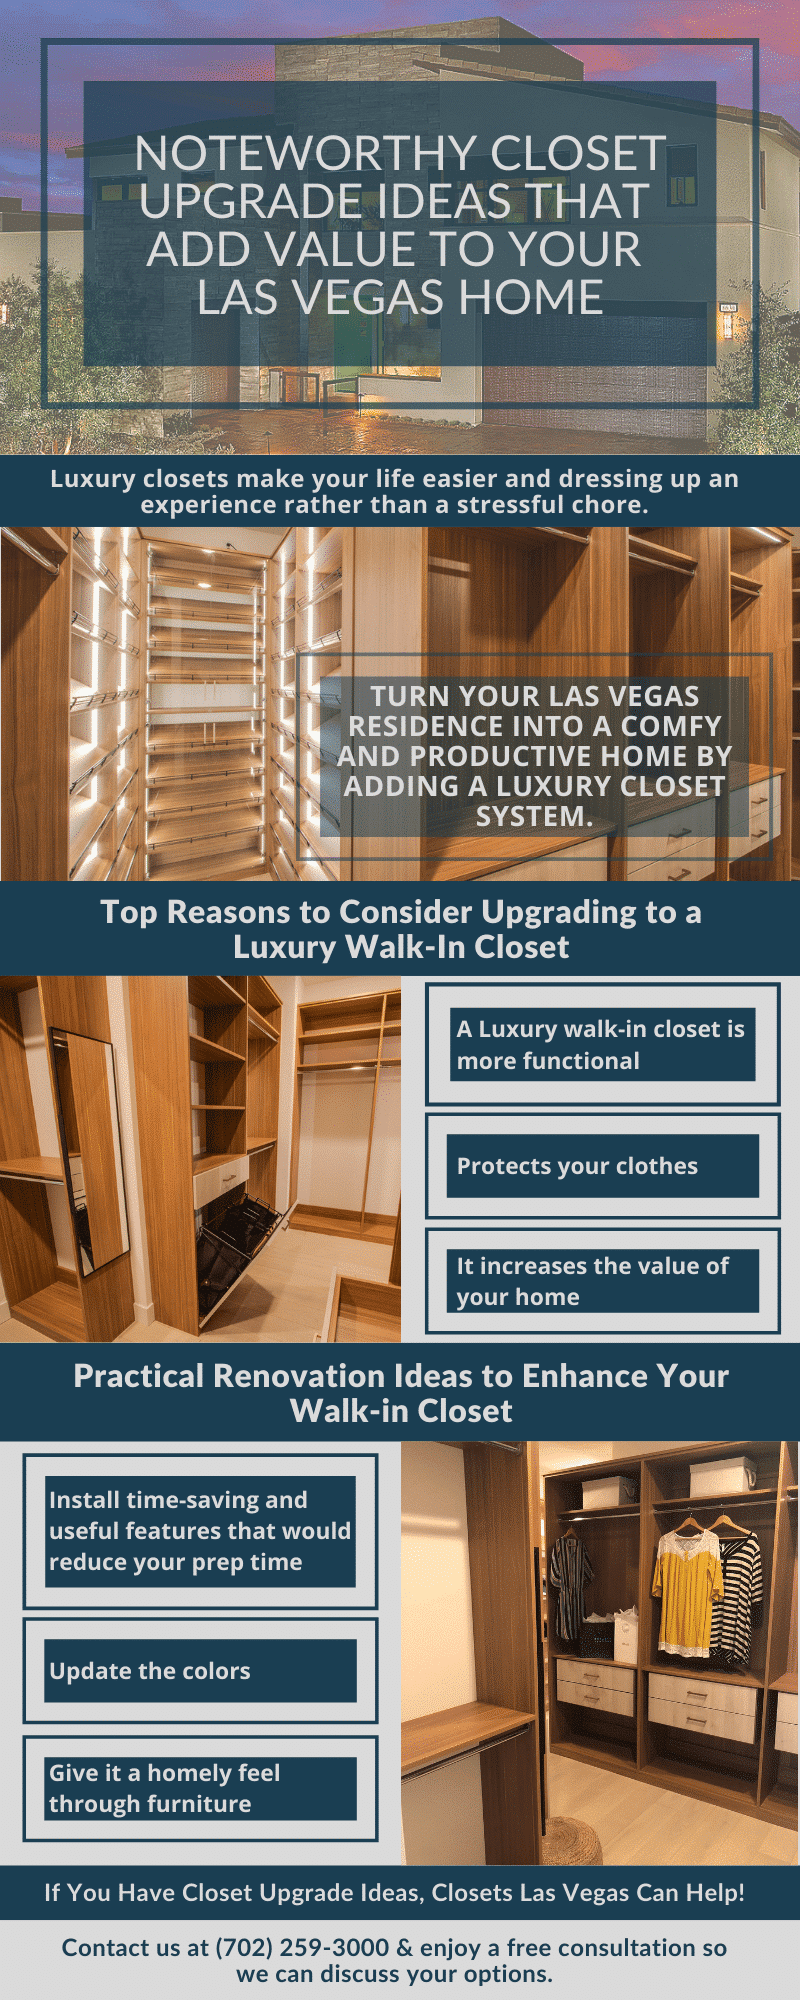 infographic for custom closet upgrades for your las vegas home